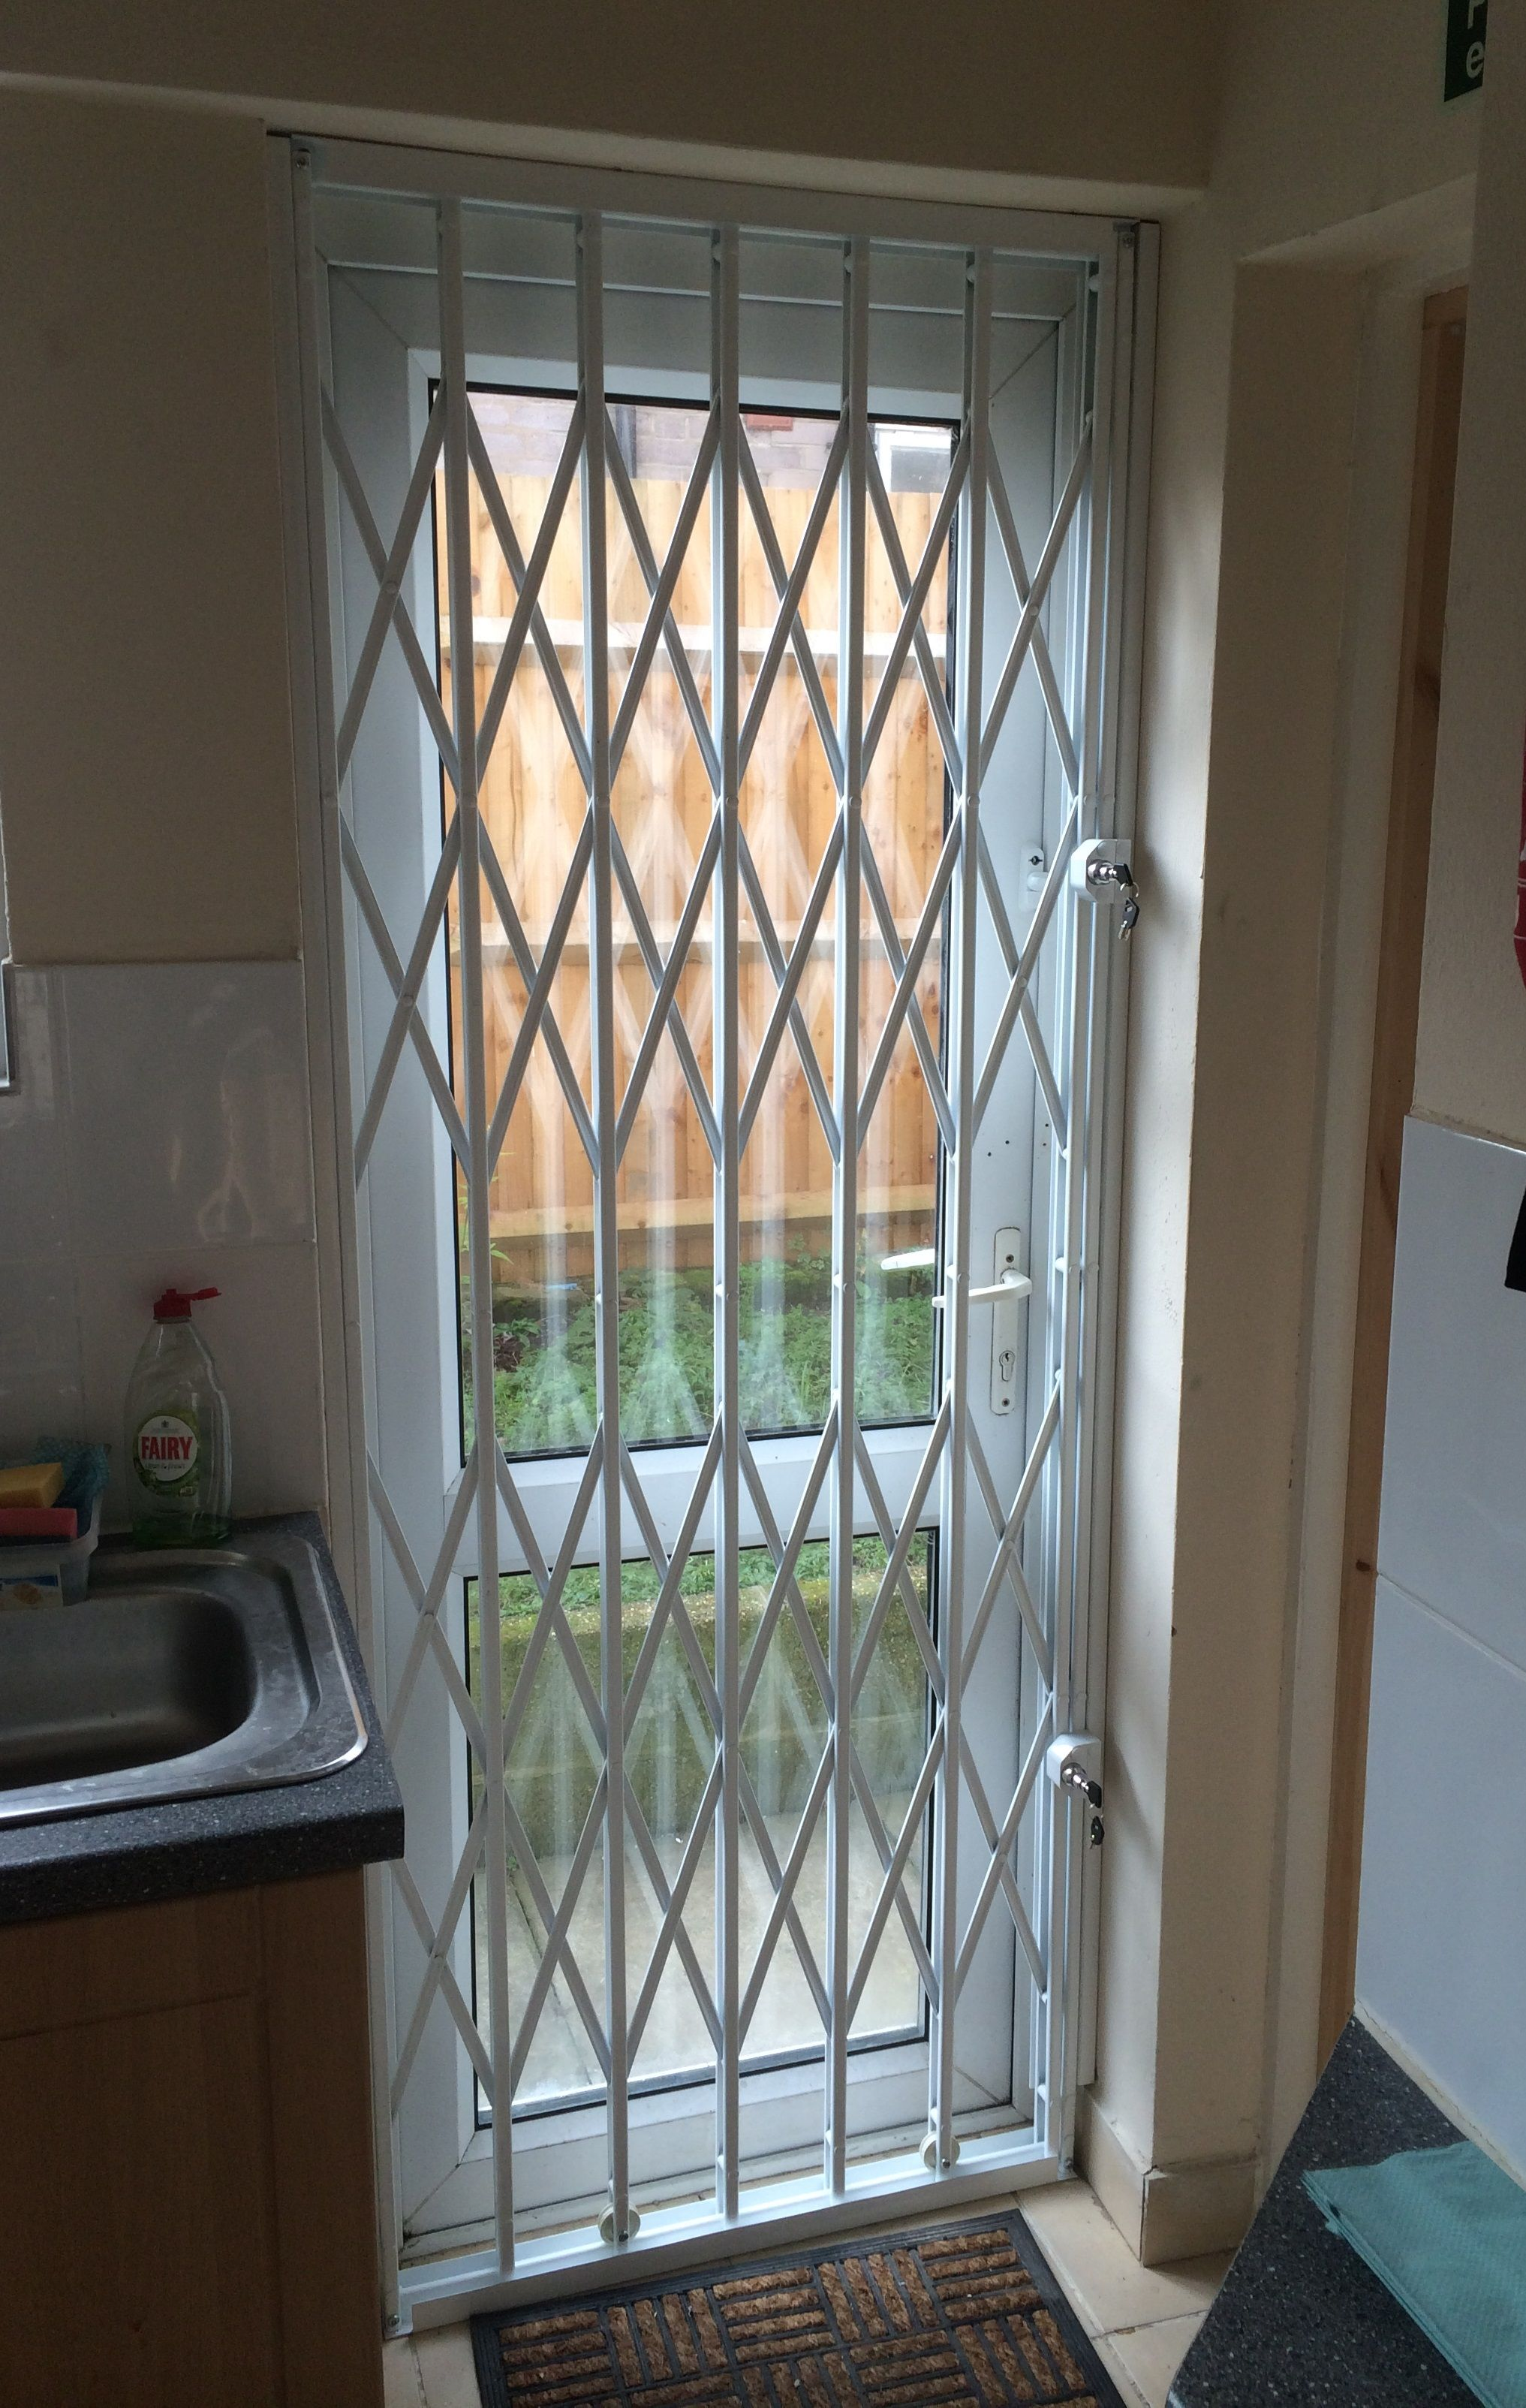 Kitchen Ealing Rsg1000 Retractable Security Grille Fitted To A Kitchen Door Of A